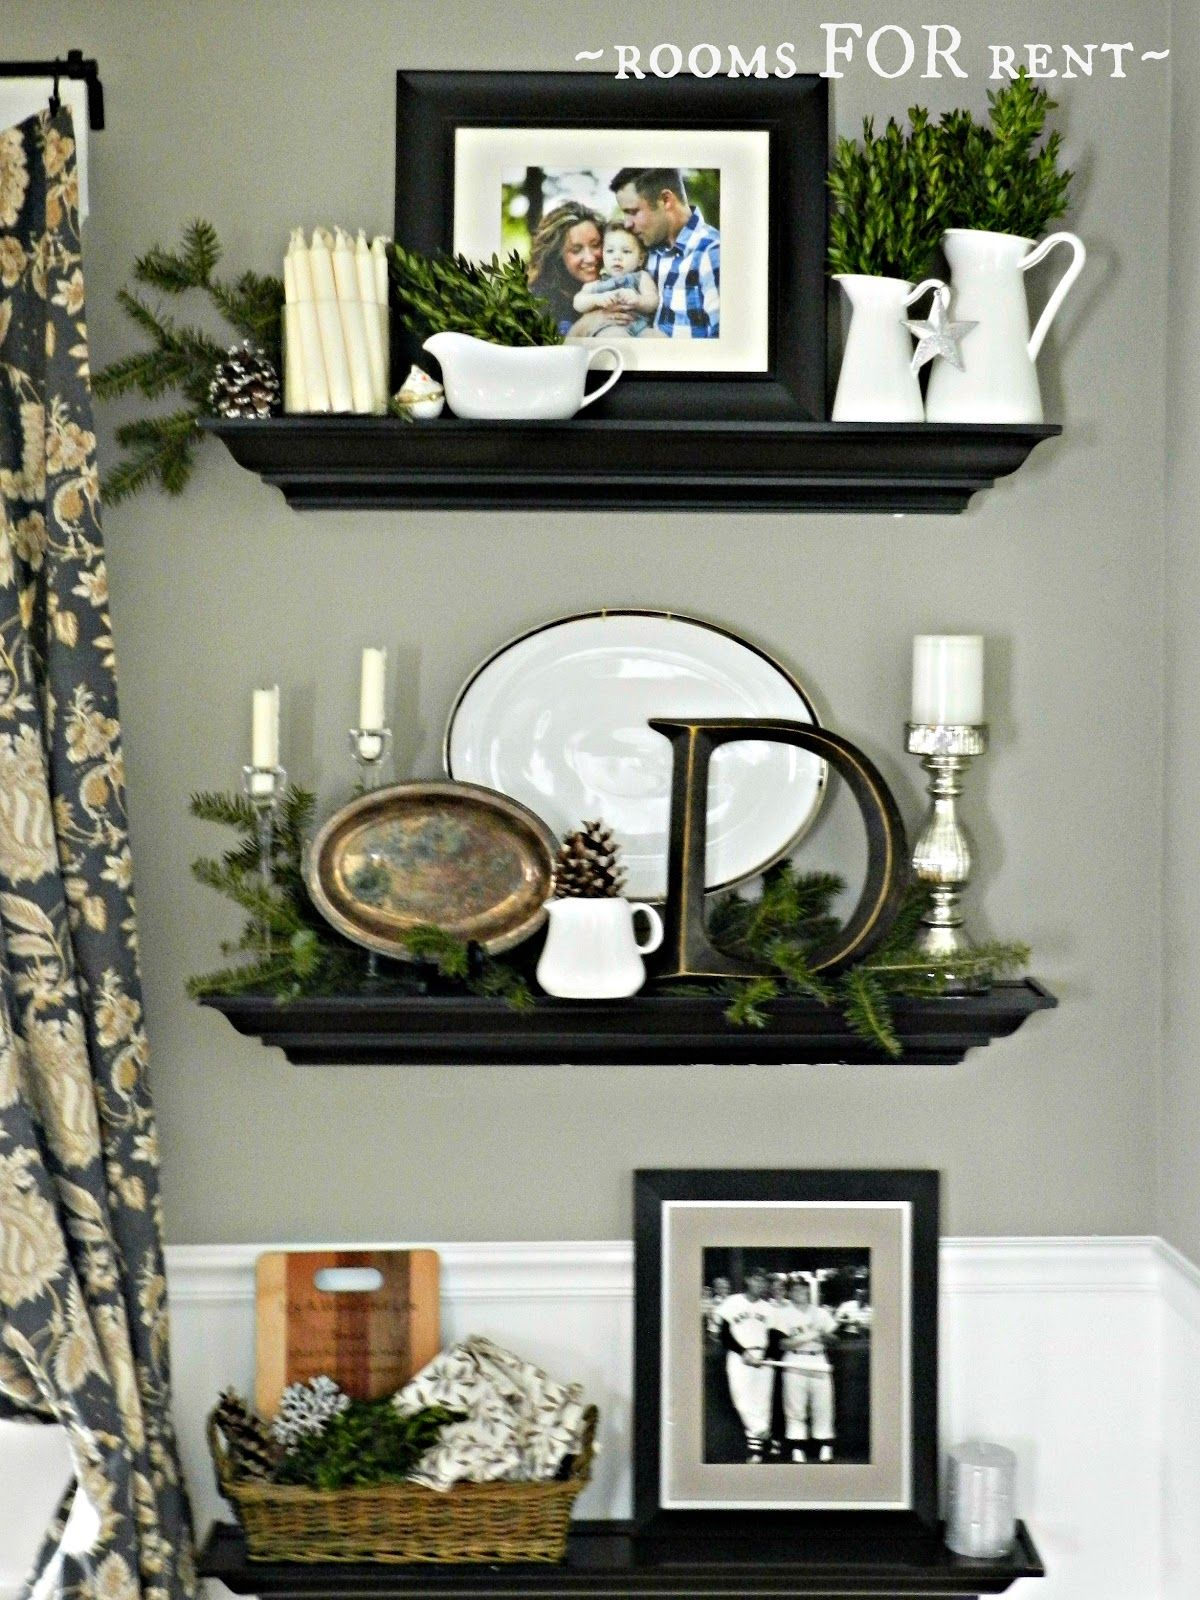 Rooms For Rent~ Dining Room Christmas Vignettes  Vignettes And Endearing Wall Shelves For Dining Room Design Decoration